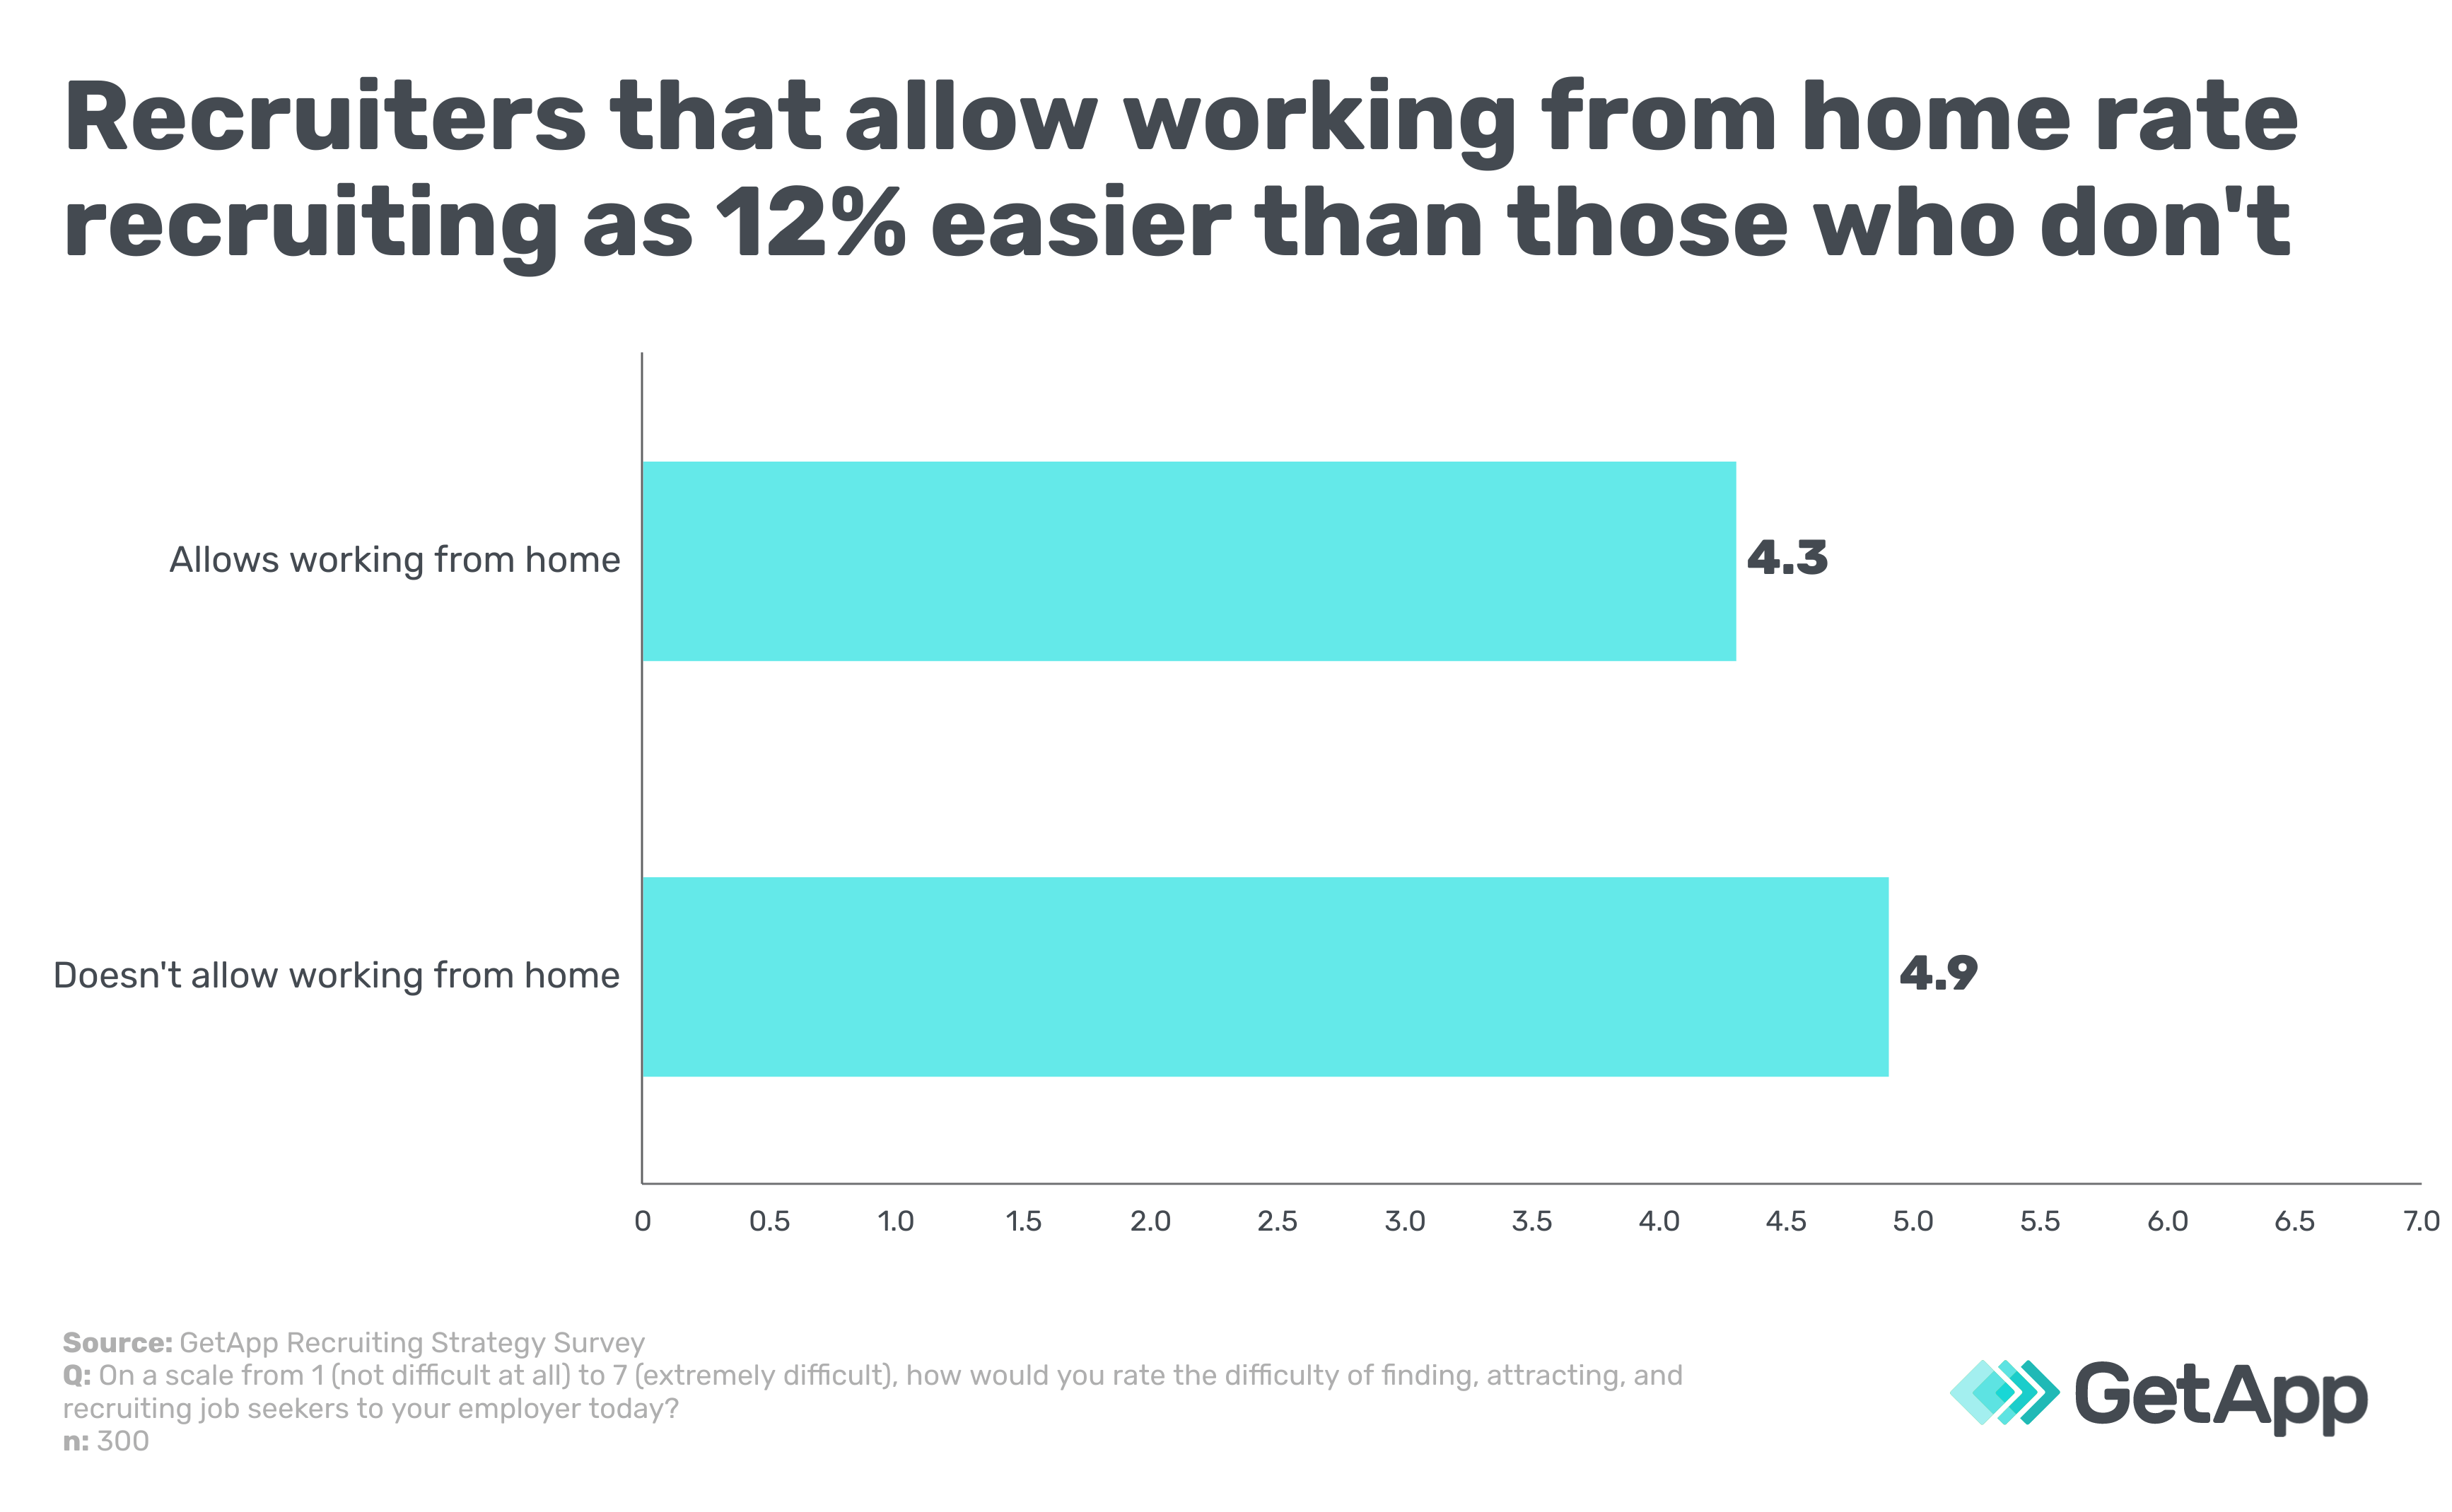 Recruiters that allow working from home rate recruiting as 12% easier than those who don't